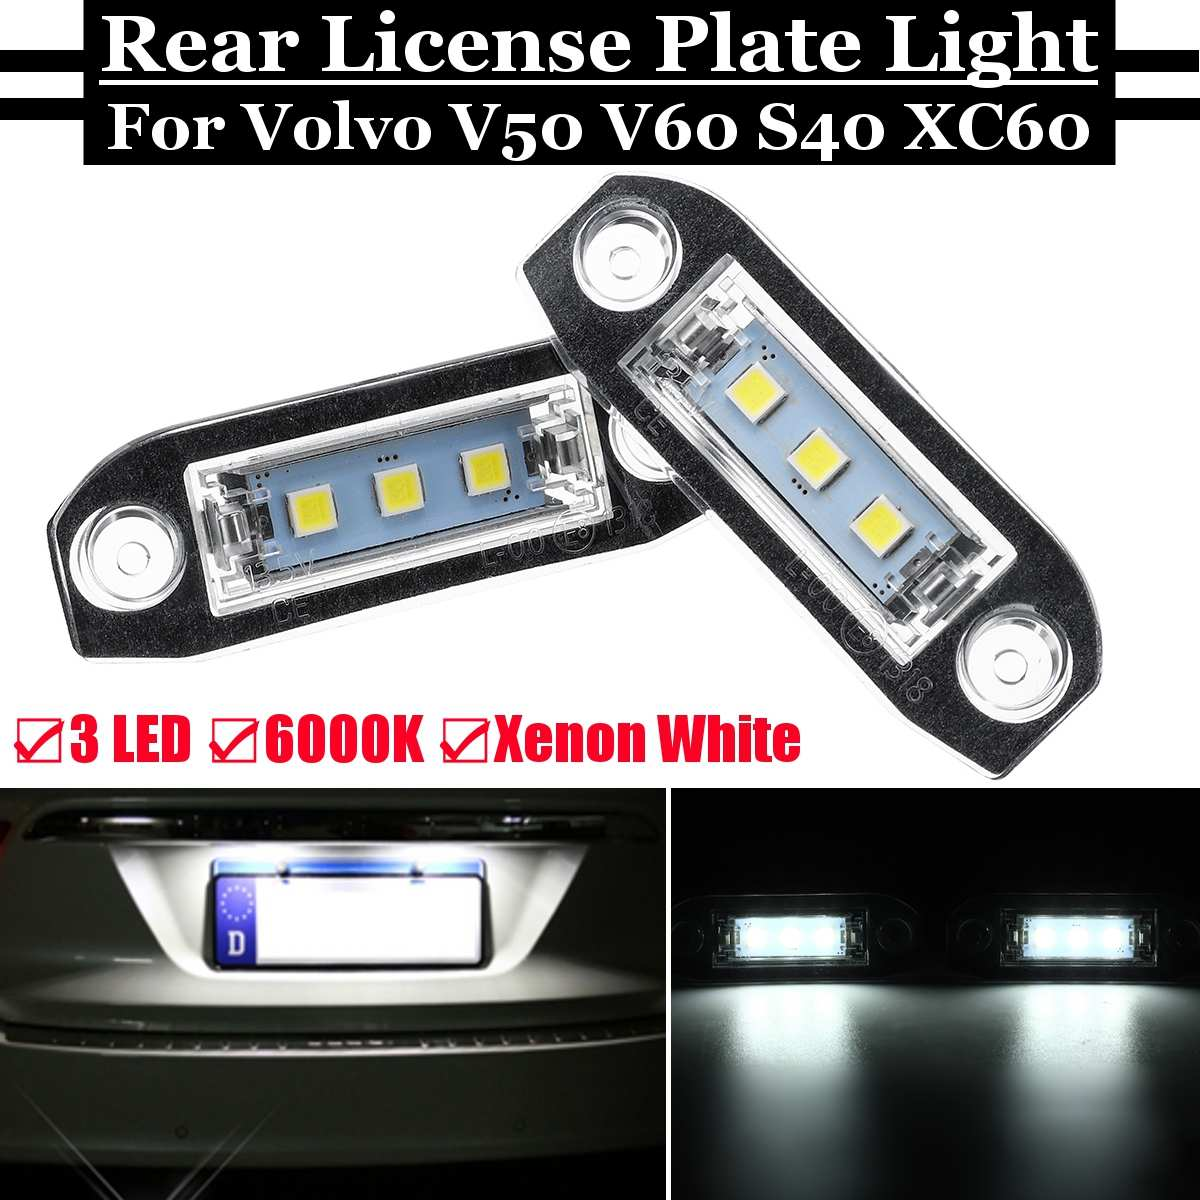 New Car 2 Pcs LED <font><b>Rear</b></font> License Plate <font><b>Light</b></font> Bright White Number Lamp for <font><b>Volvo</b></font> S40 S60 <font><b>S80</b></font> V50 V60 V70 Xc60 Xc70 Xc90 2004 - 2015 image